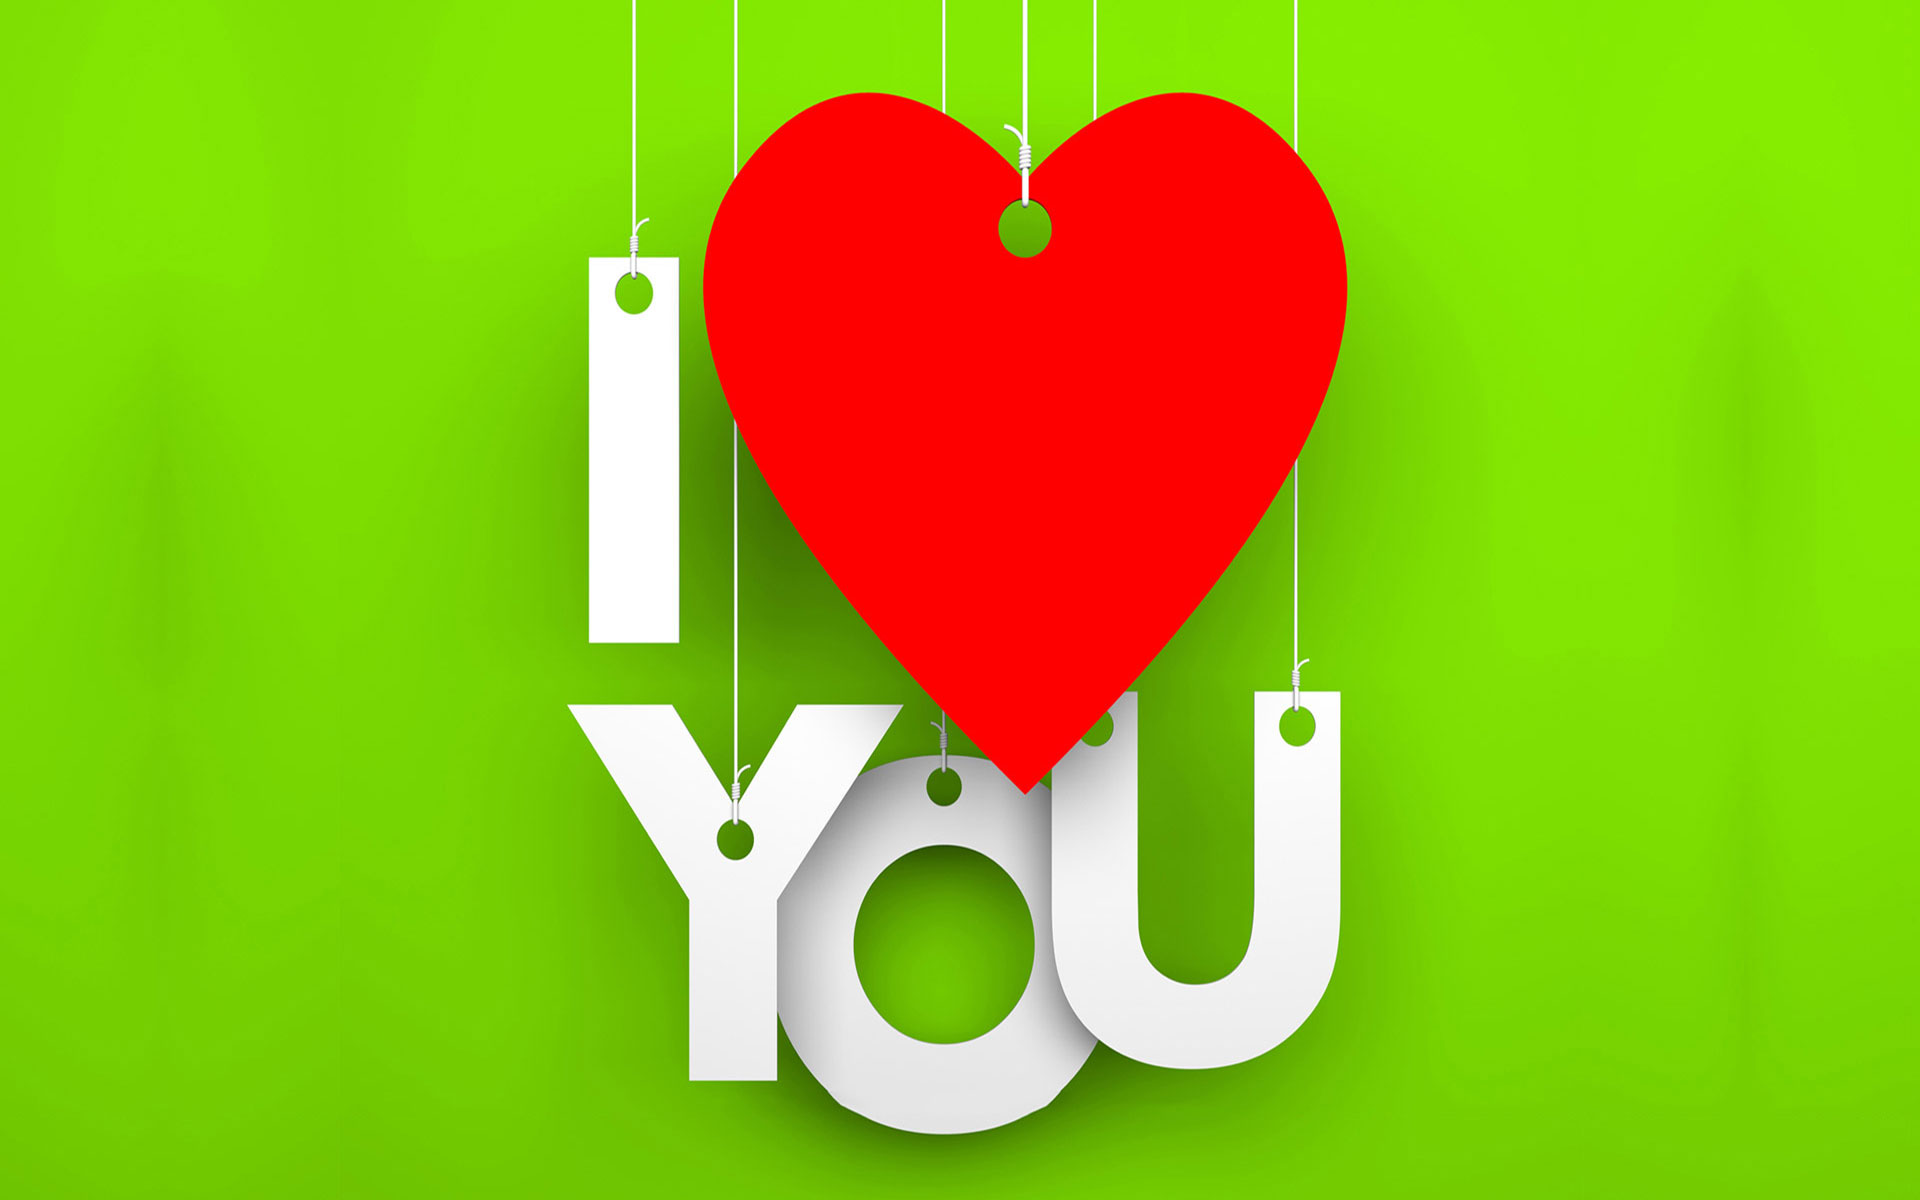 Great Wallpaper Love Cute - l-love-you-with-green-background-and-red-heart1  Best Photo Reference_163188.jpg?92dbd0\u002692dbd0